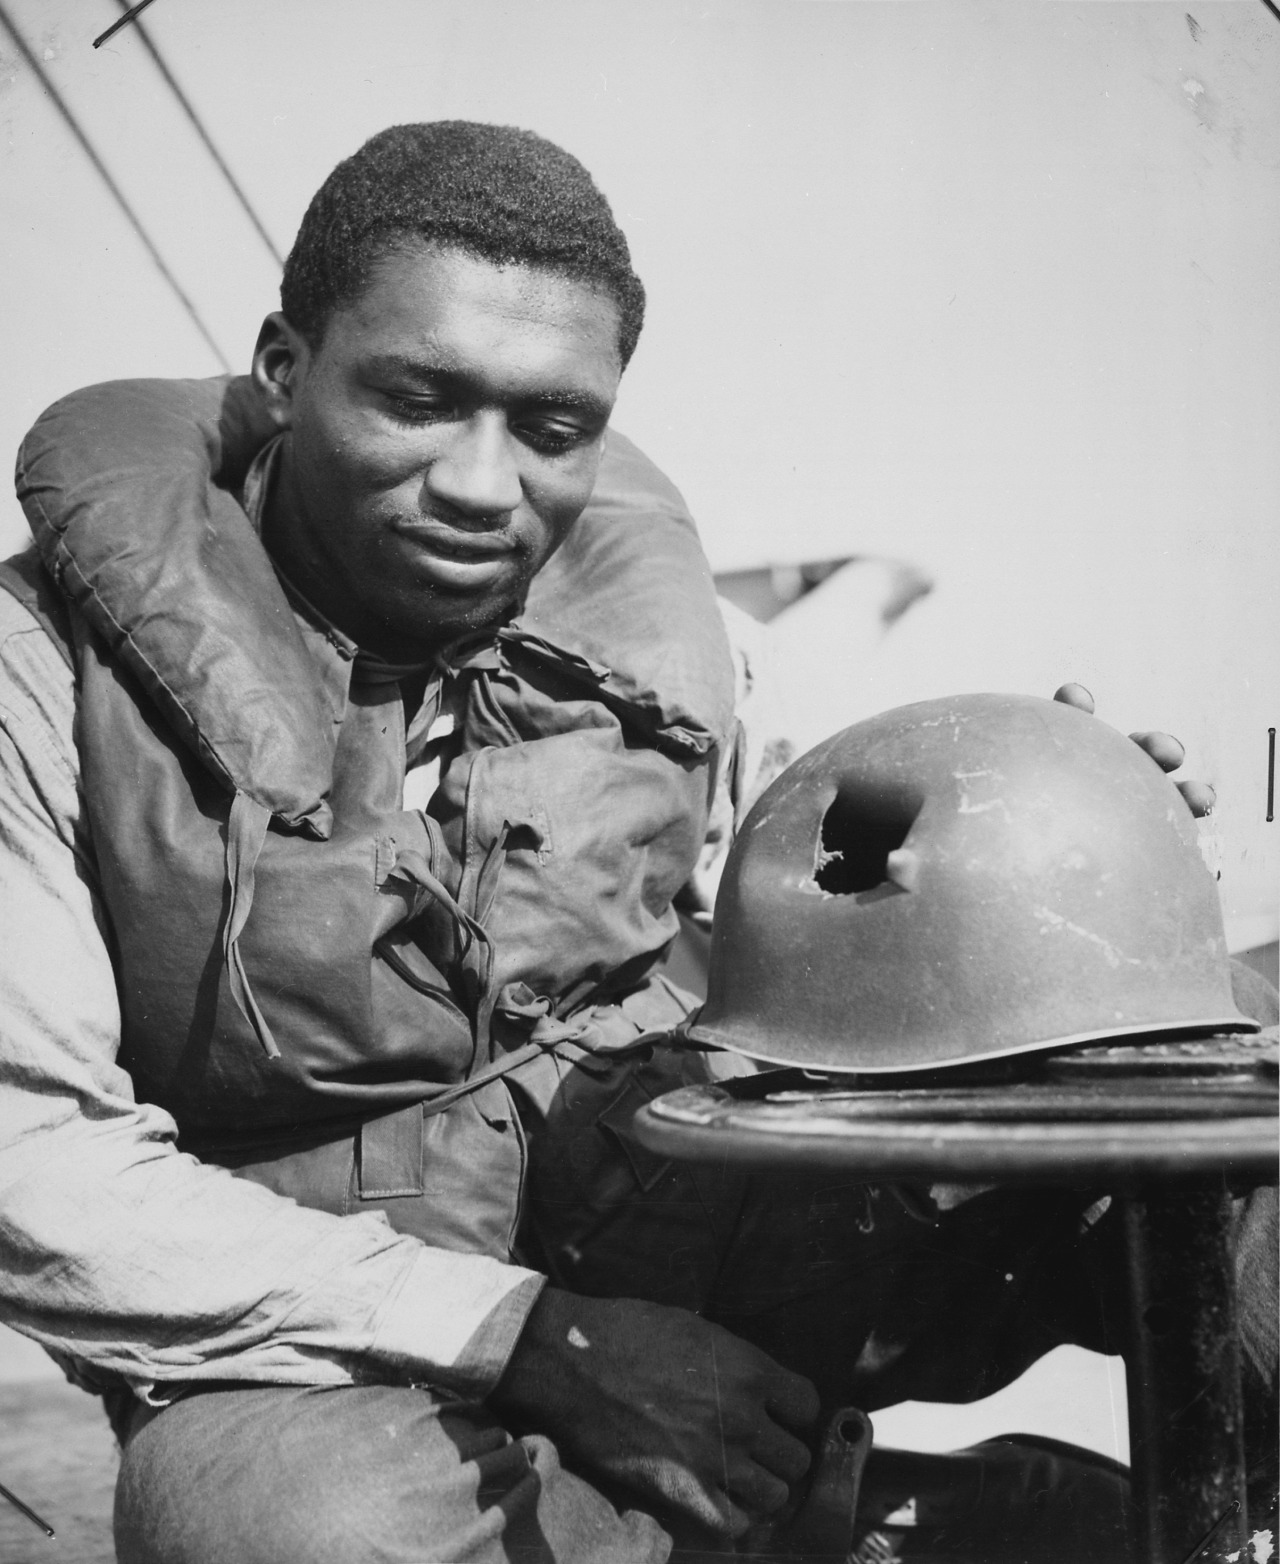 uscg Charles Tyner, Fireman First Class, inspects his helmet hit by shrapnel during the Allied landings in southern France. 1944.